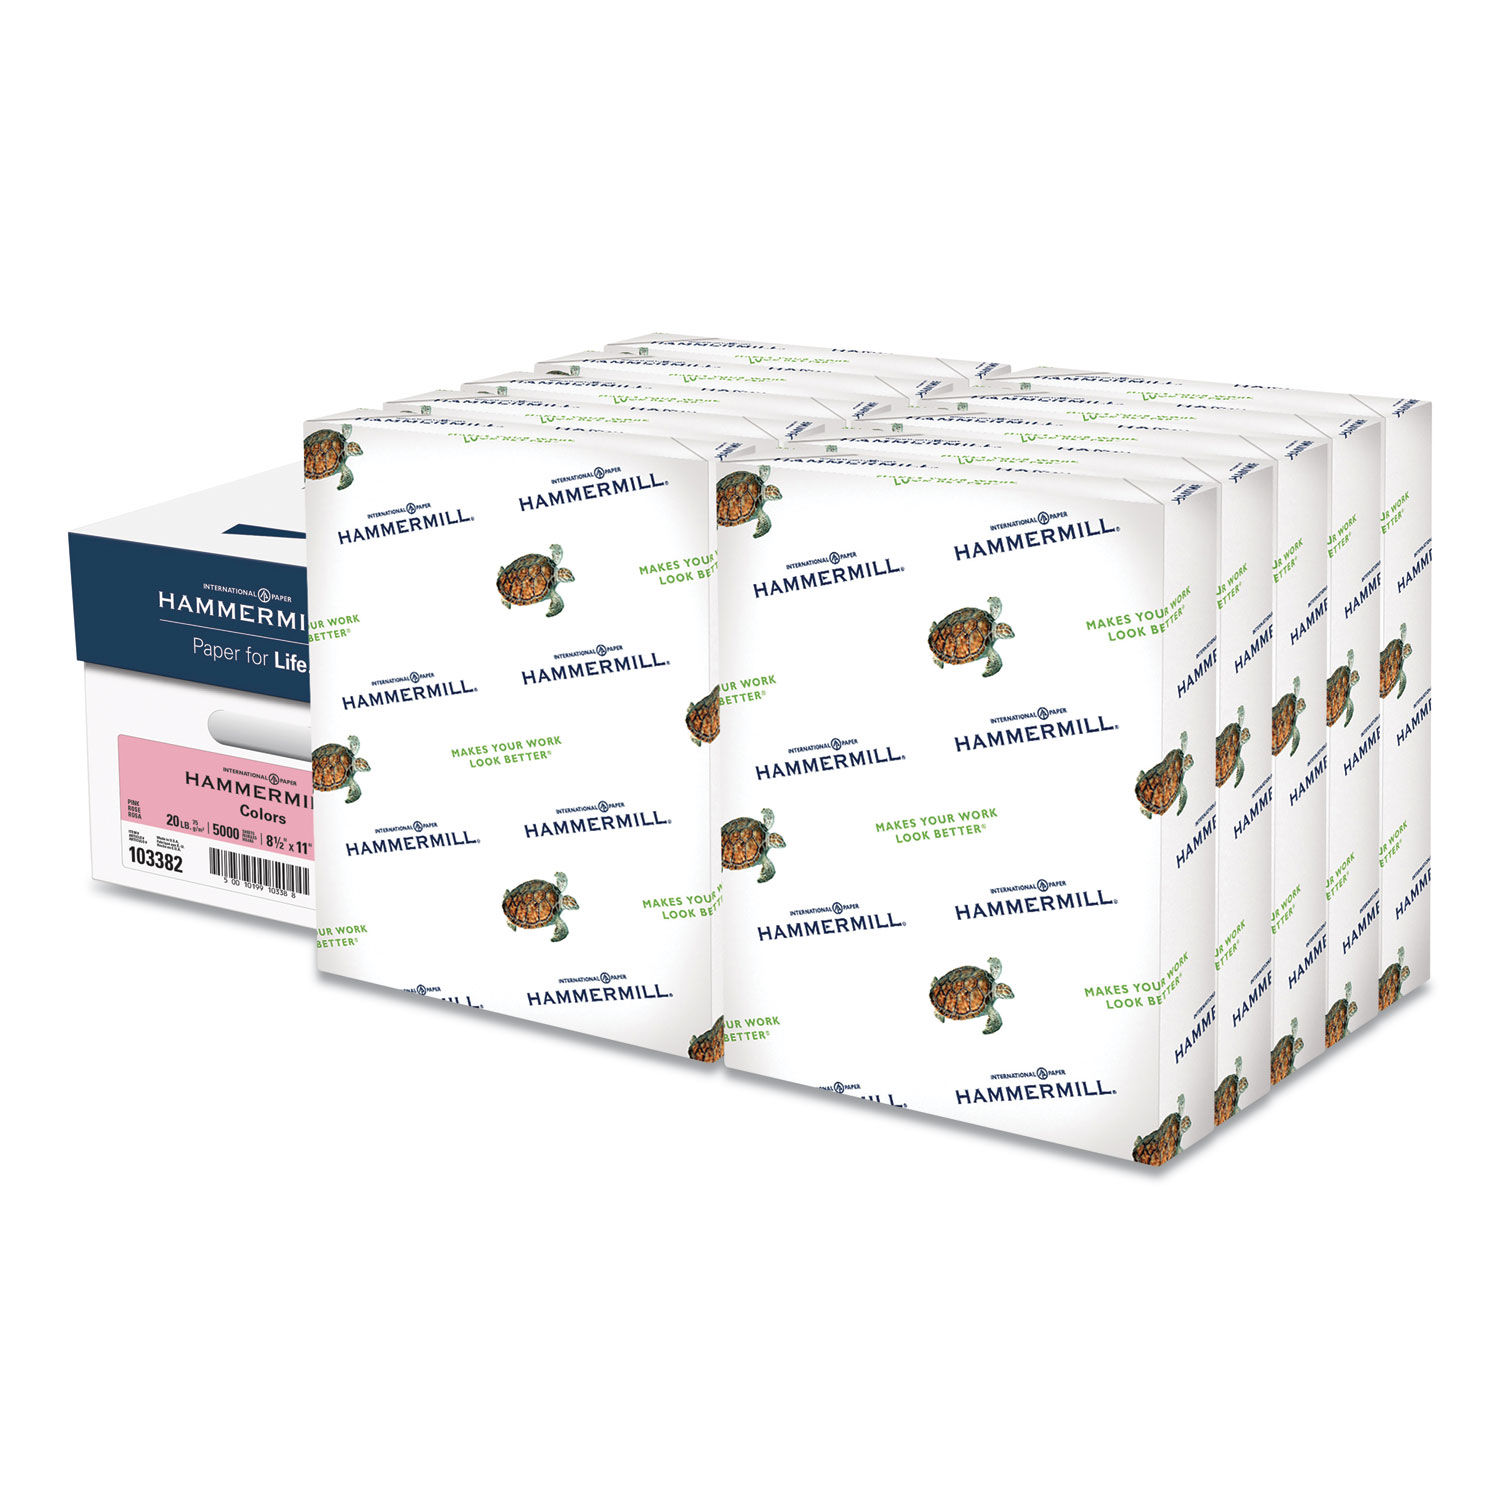 Hammermill 103382 Recycled Colored Paper Pink 8-1//2 x 11 500 Sheets//Ream 20lb